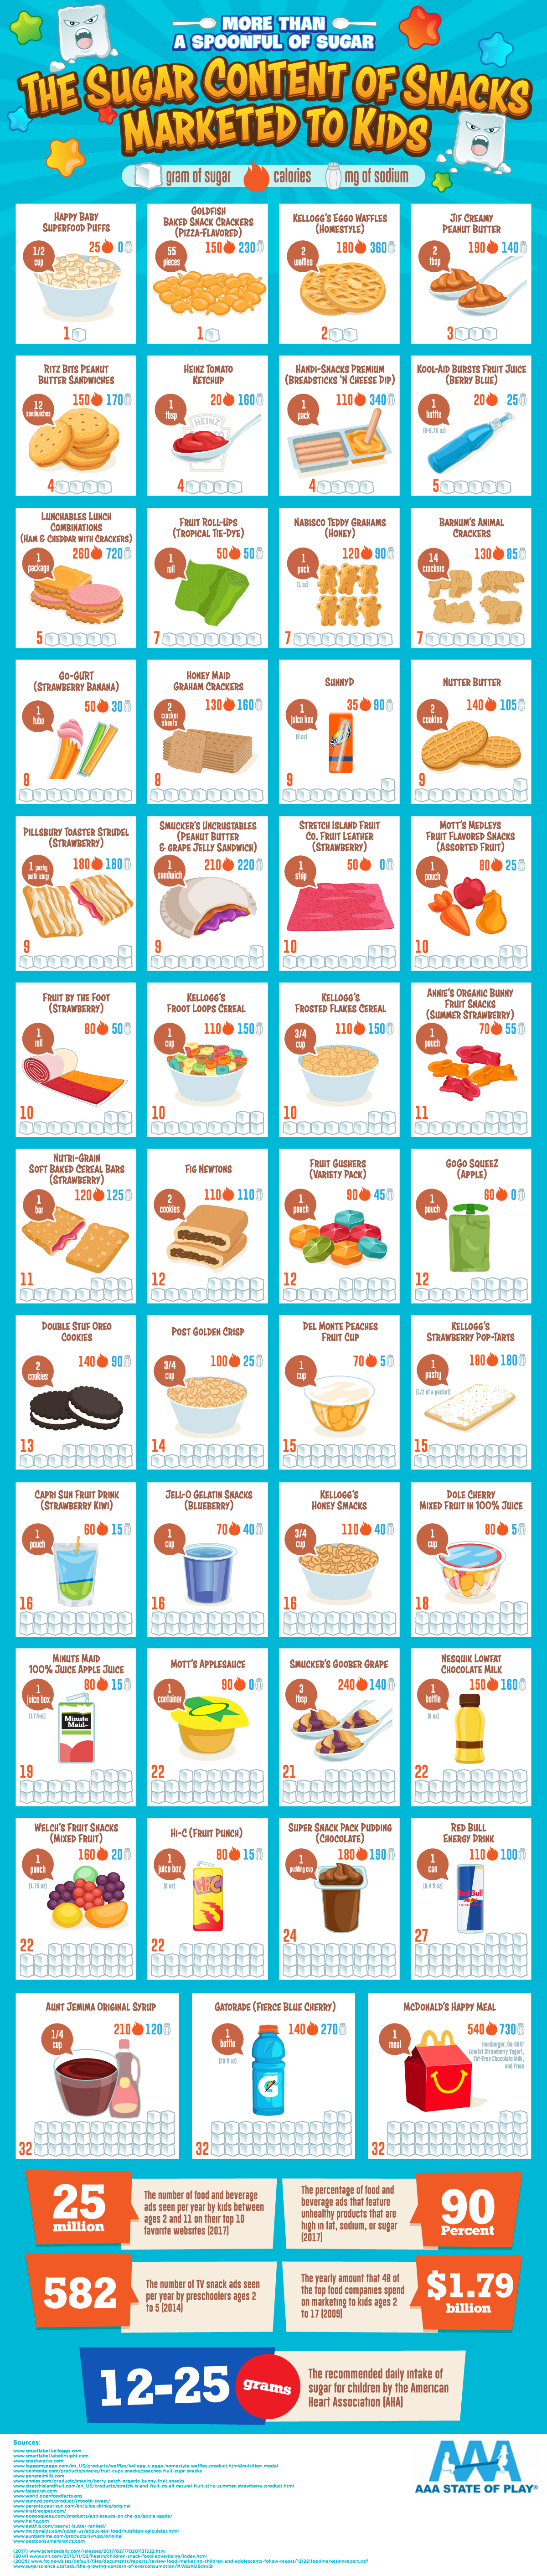 The Sugar Content of Snacks Marketed to Kids - AAAStateofPlay.com - Infographic